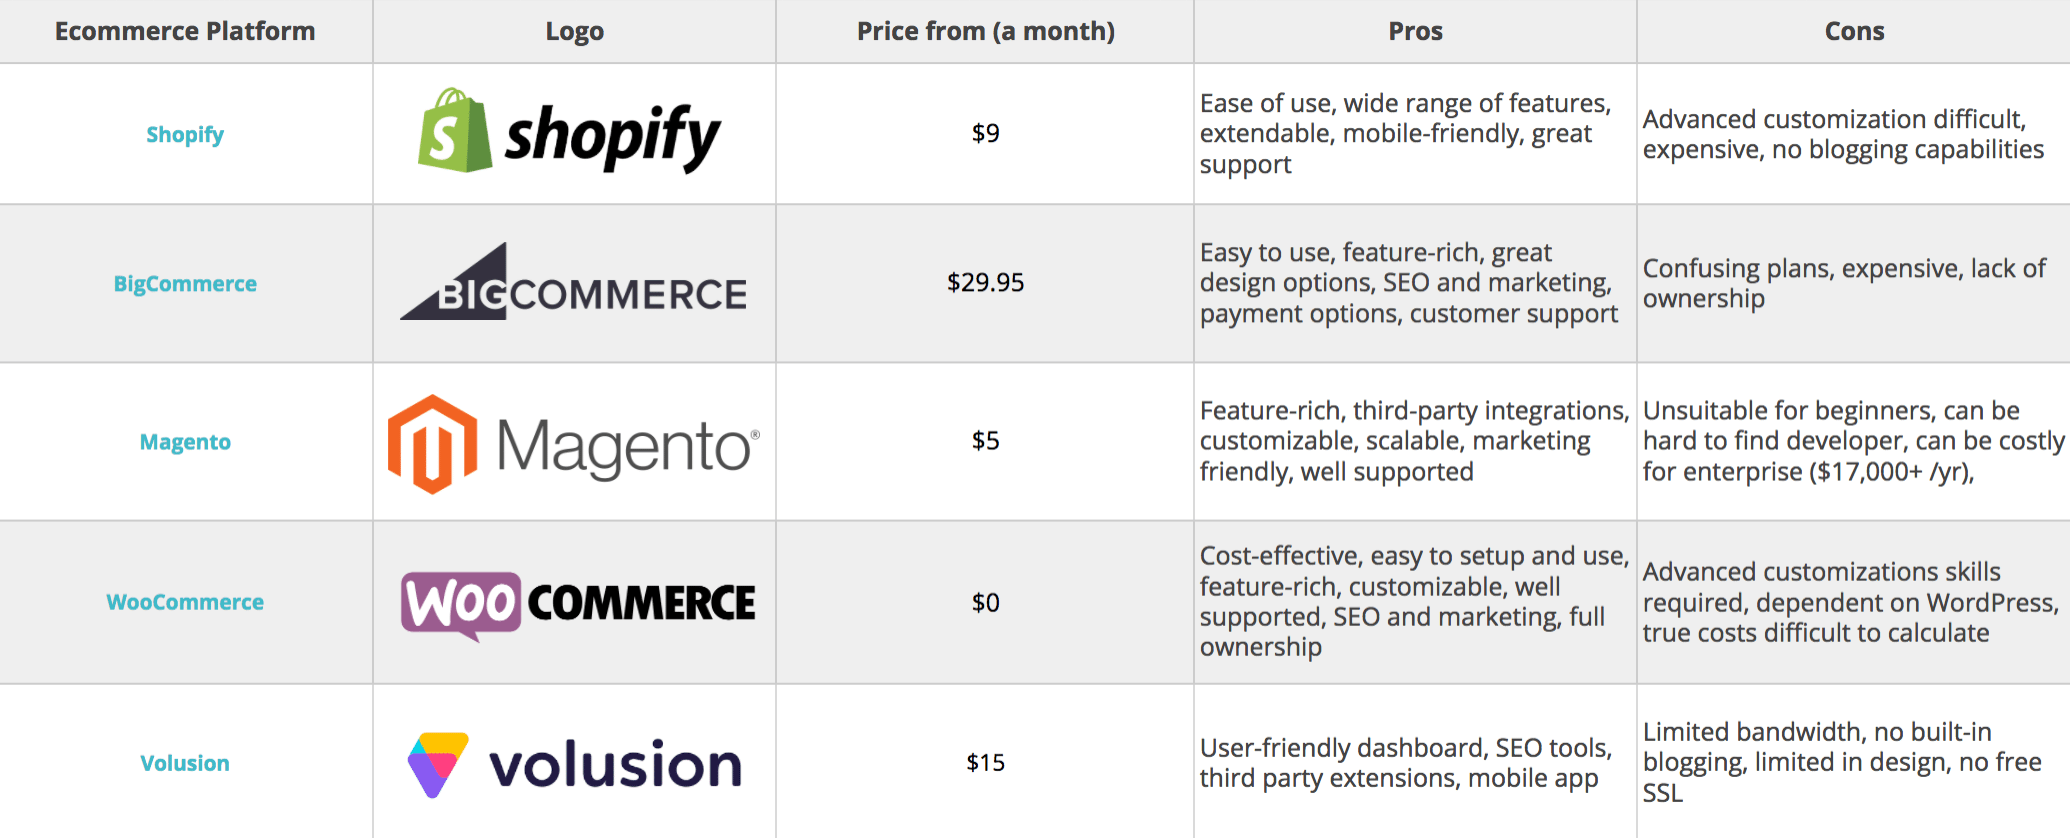 An image of different ecommerce platforms and their information